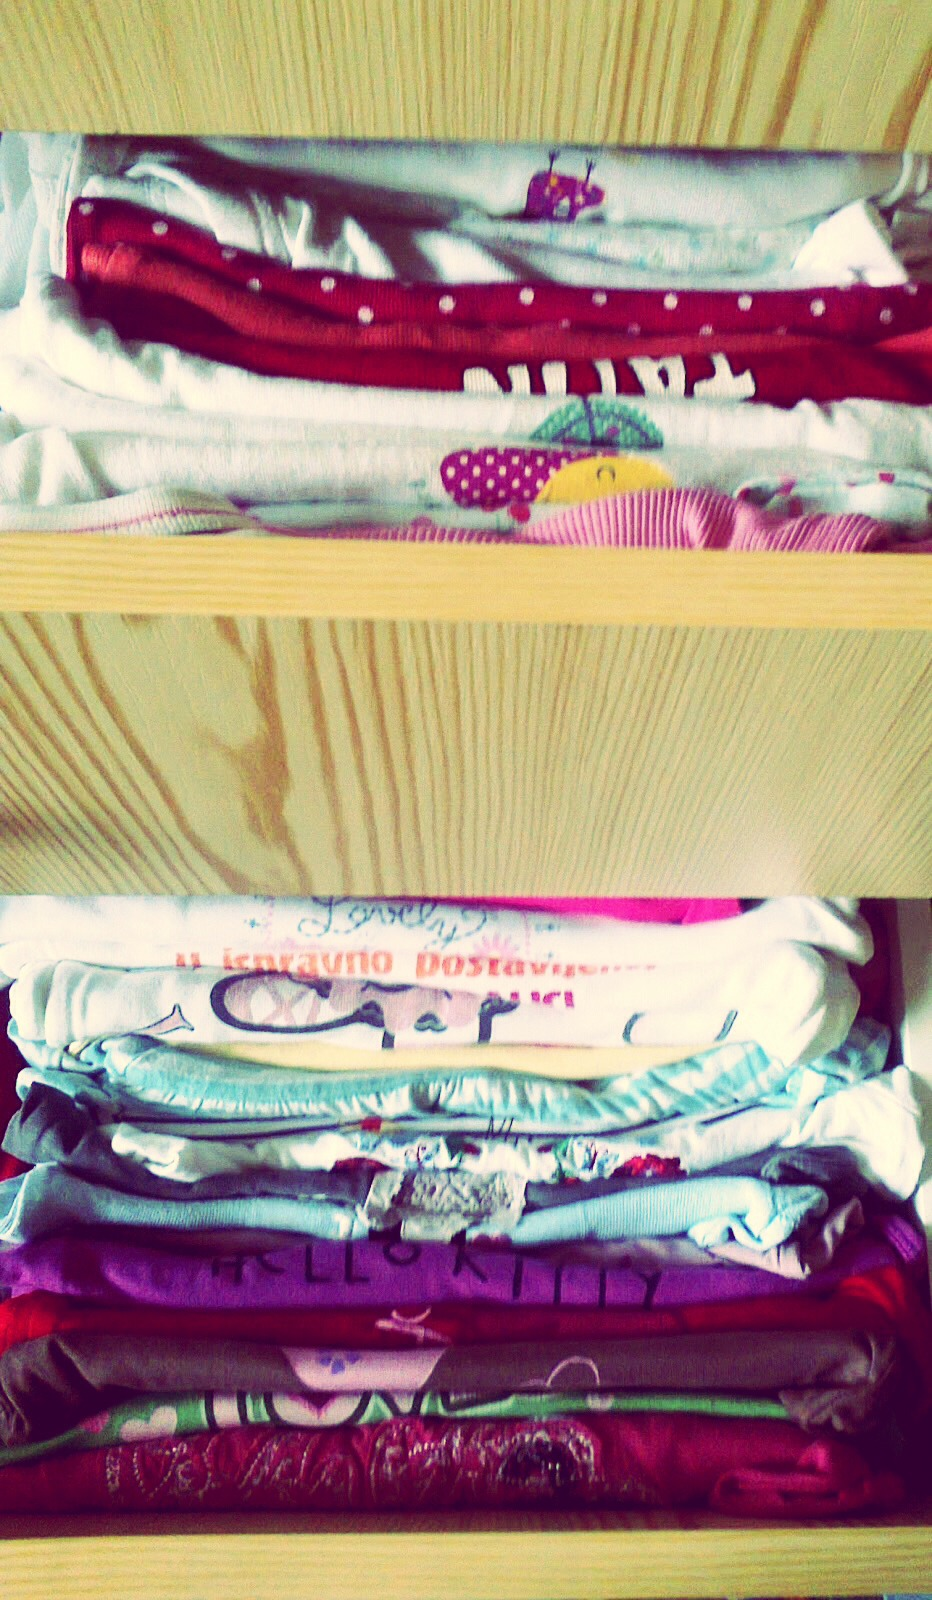 Put clothes in vertically so organize your dresser!